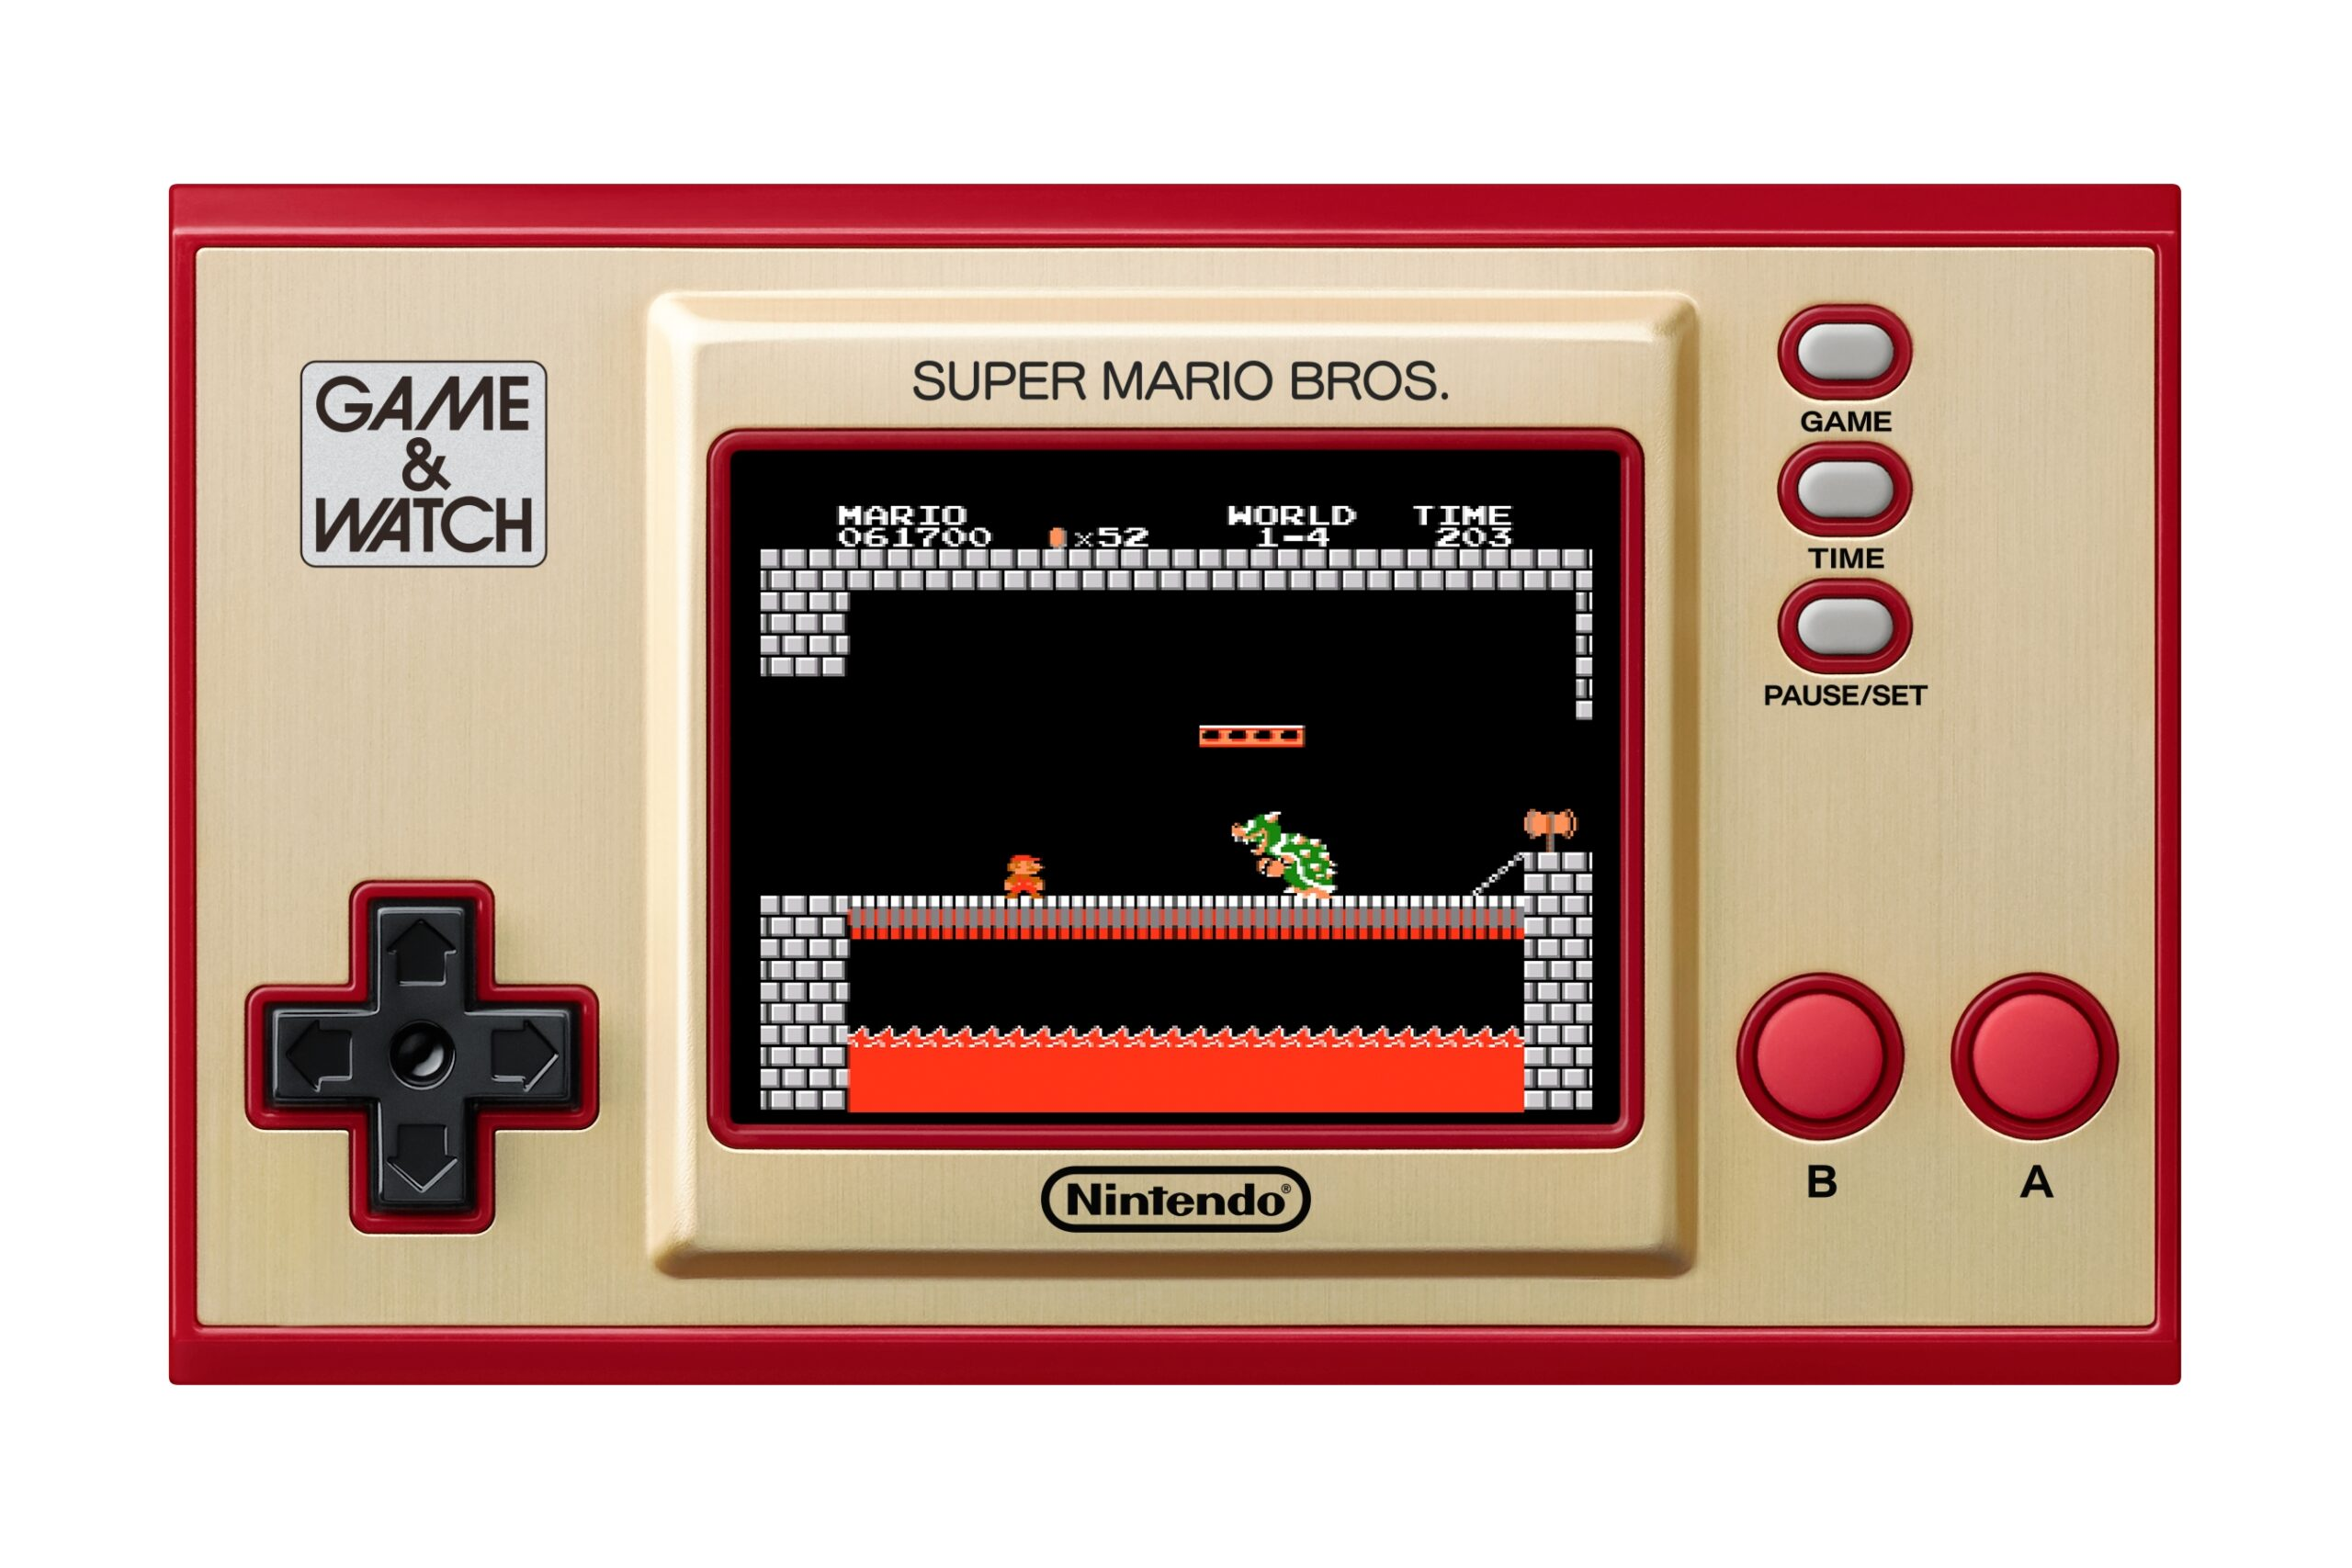 Game-and-Watch-Super-Mario-Bros_2020_09-03-20_008